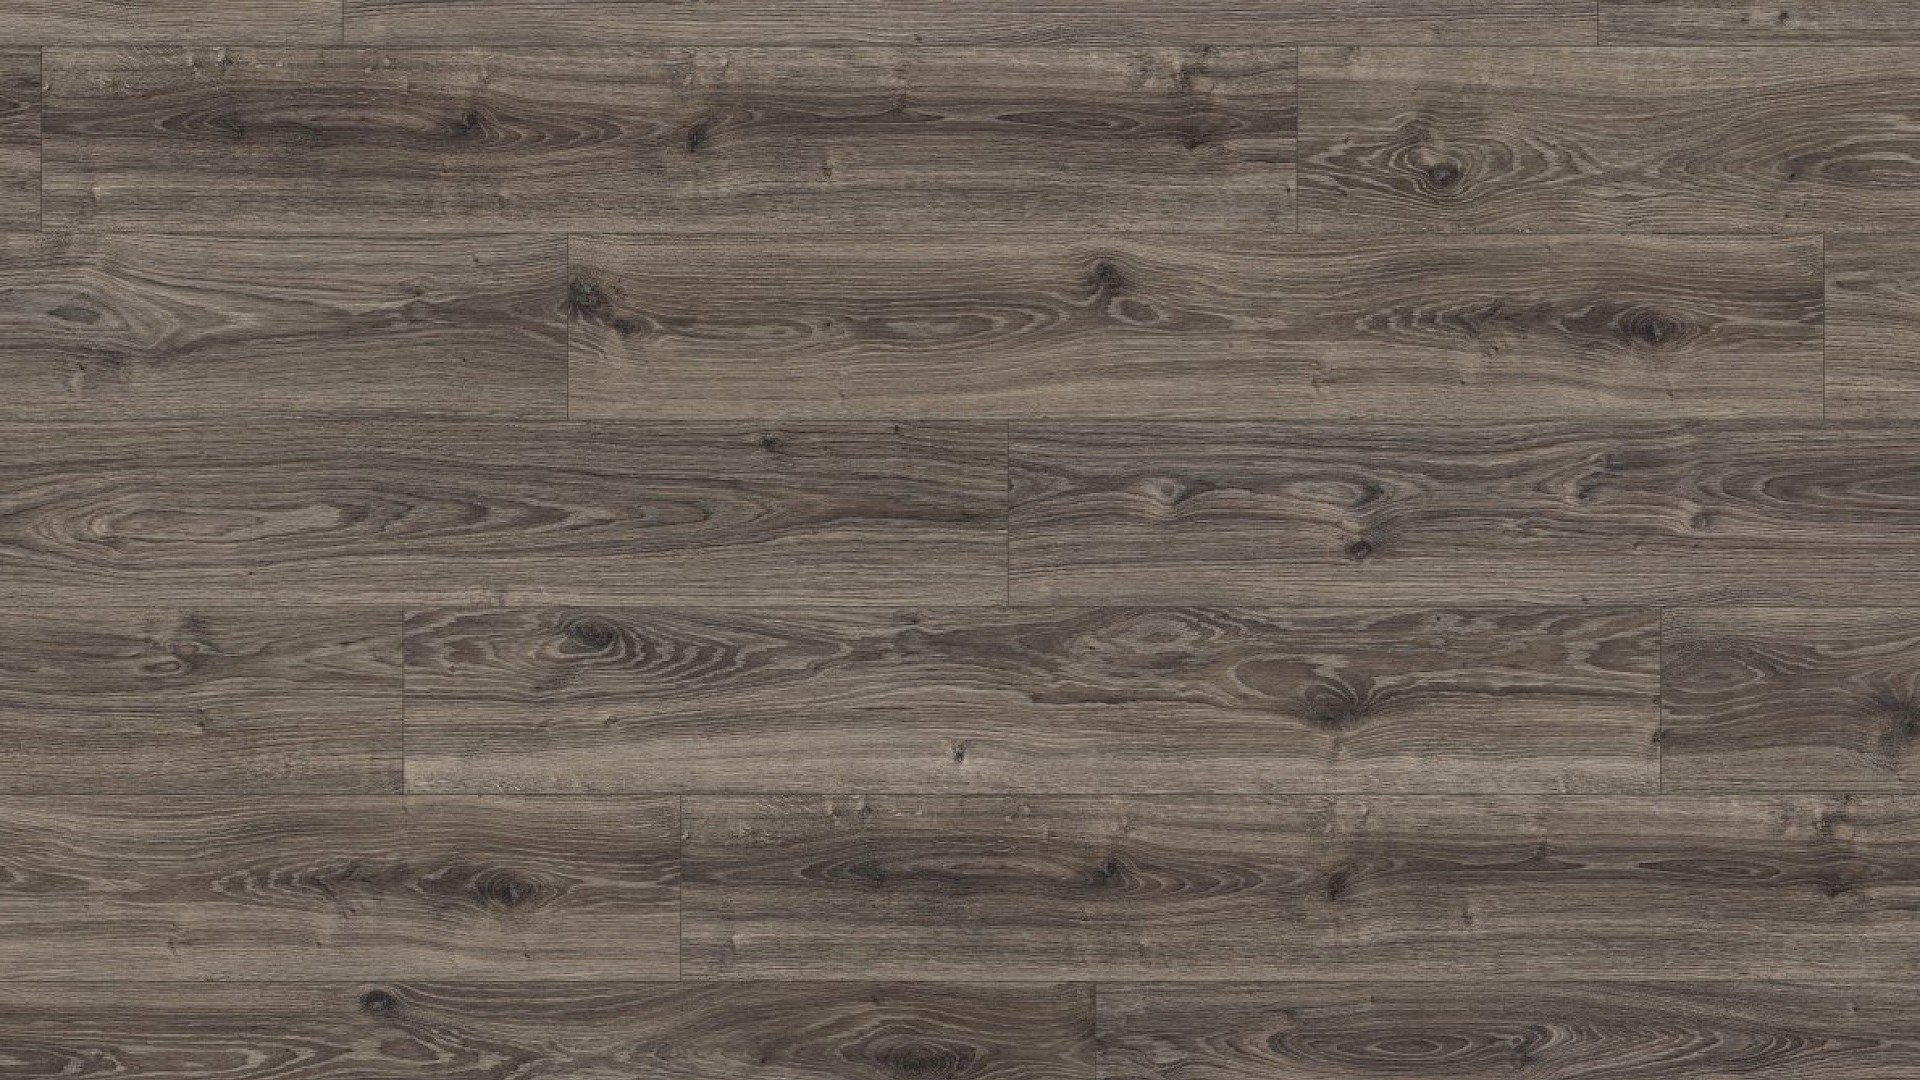 Egger Classic 7mm Dark Lasken Oak 4V Laminate Flooring EPL135